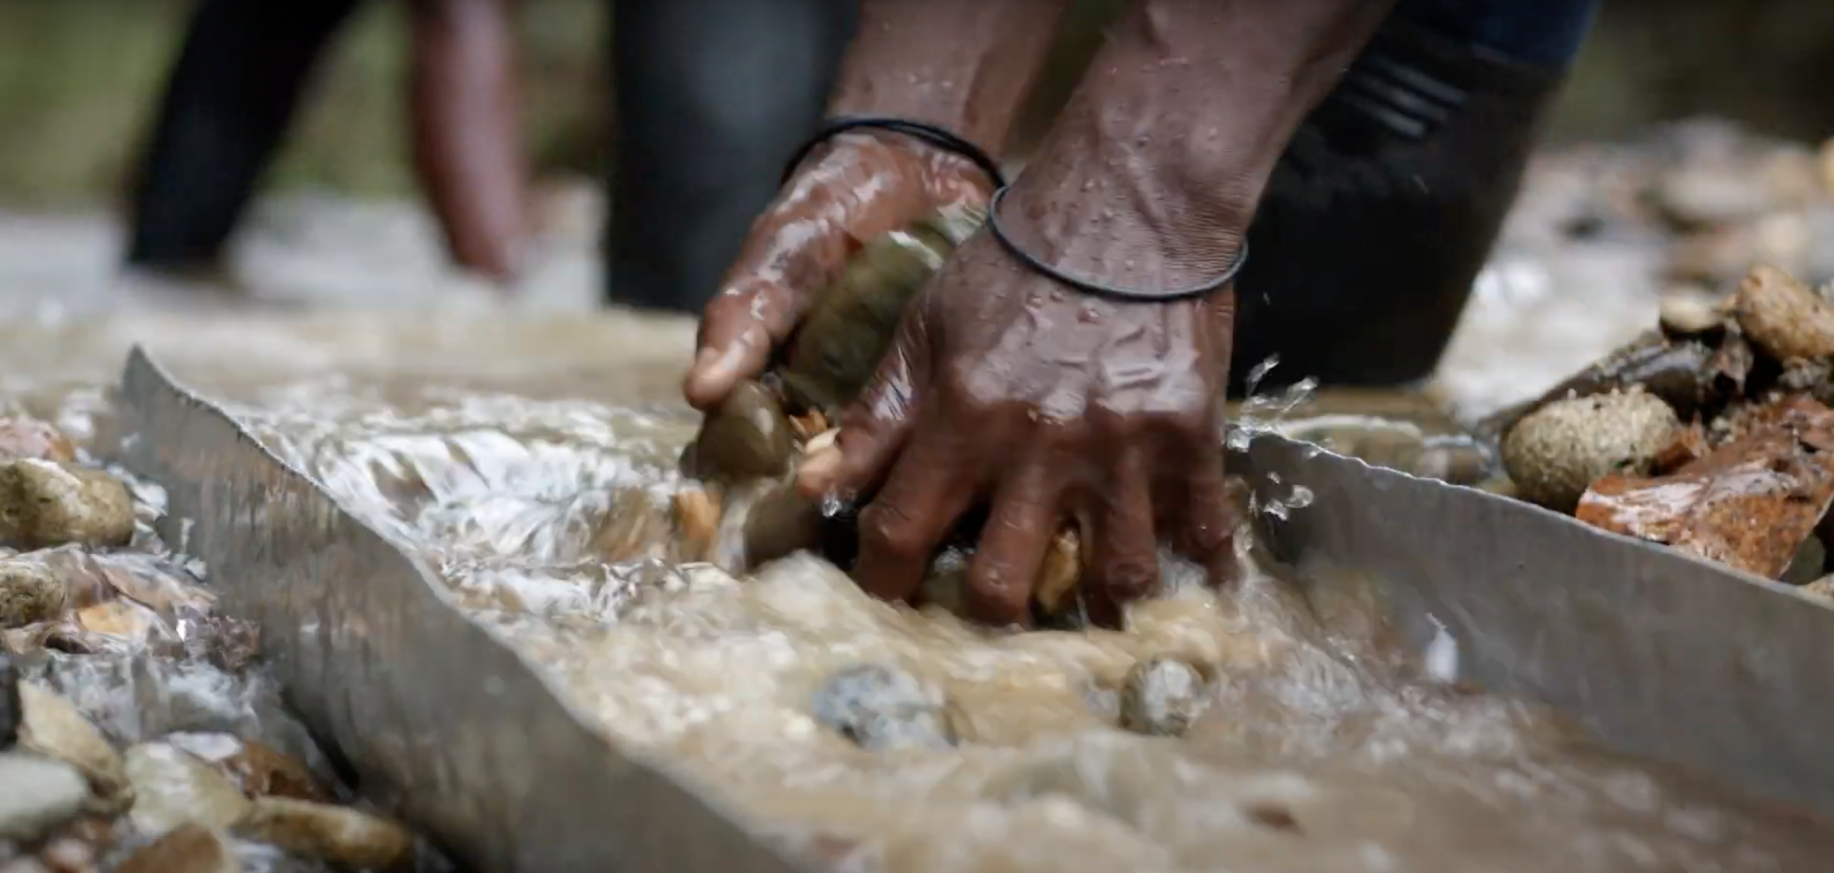 Strengthening women's leadership role in Colombia's artisanal gold mining sector